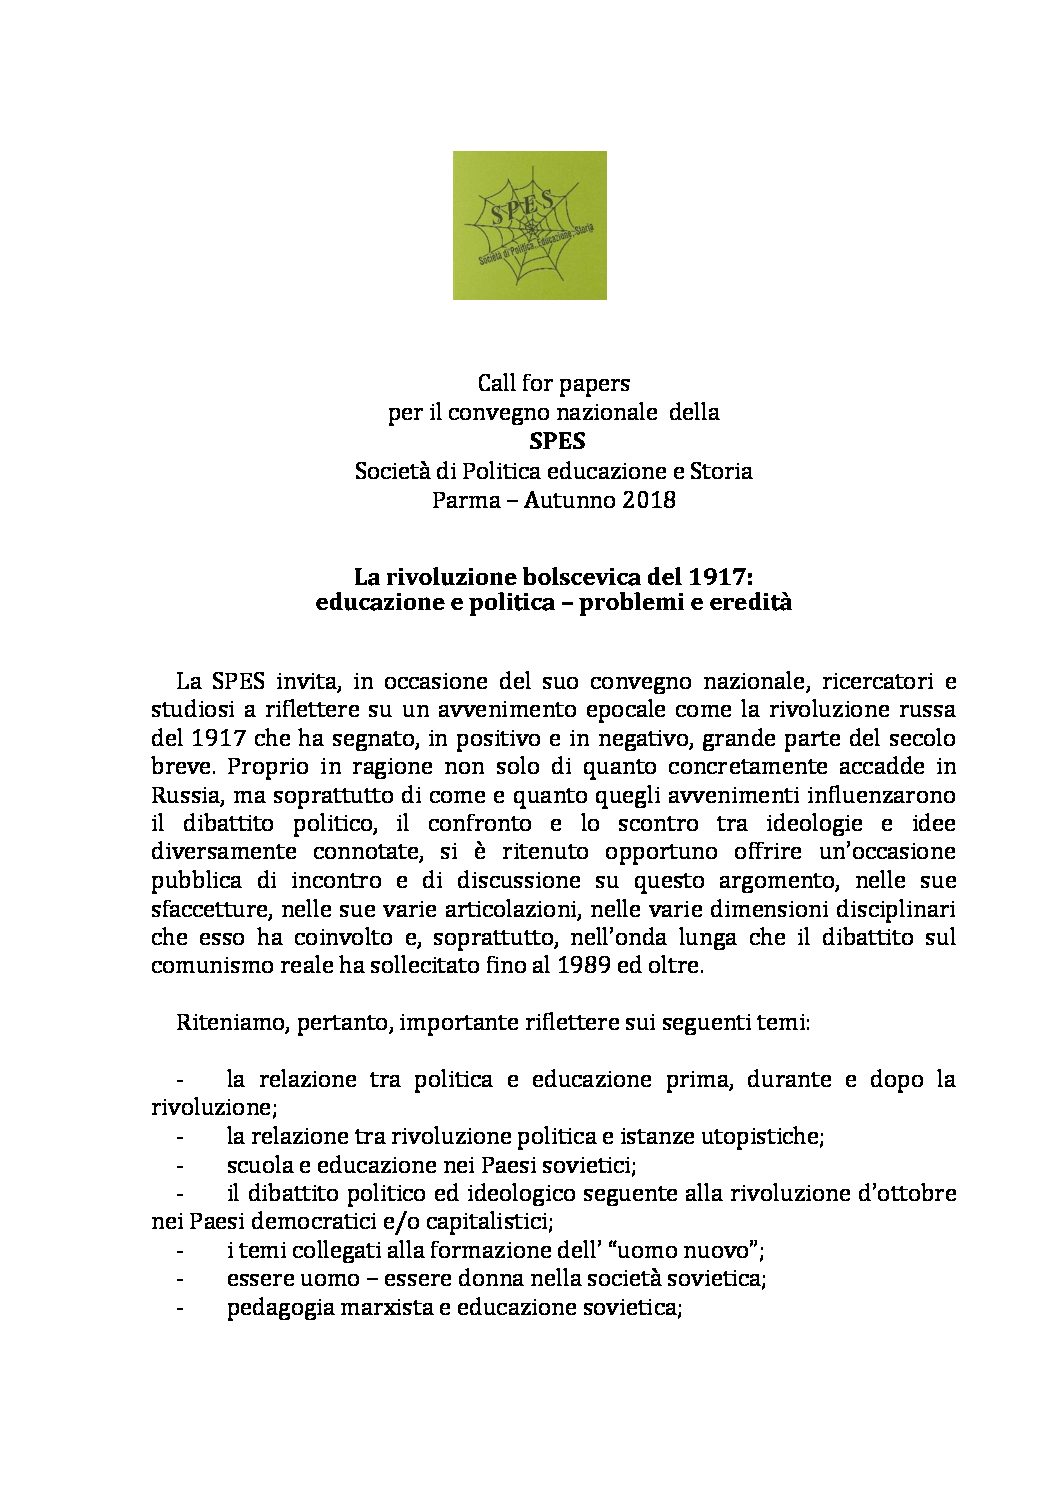 "Call for papers ""Convegno SPES"" – autunno 2018, Parma"